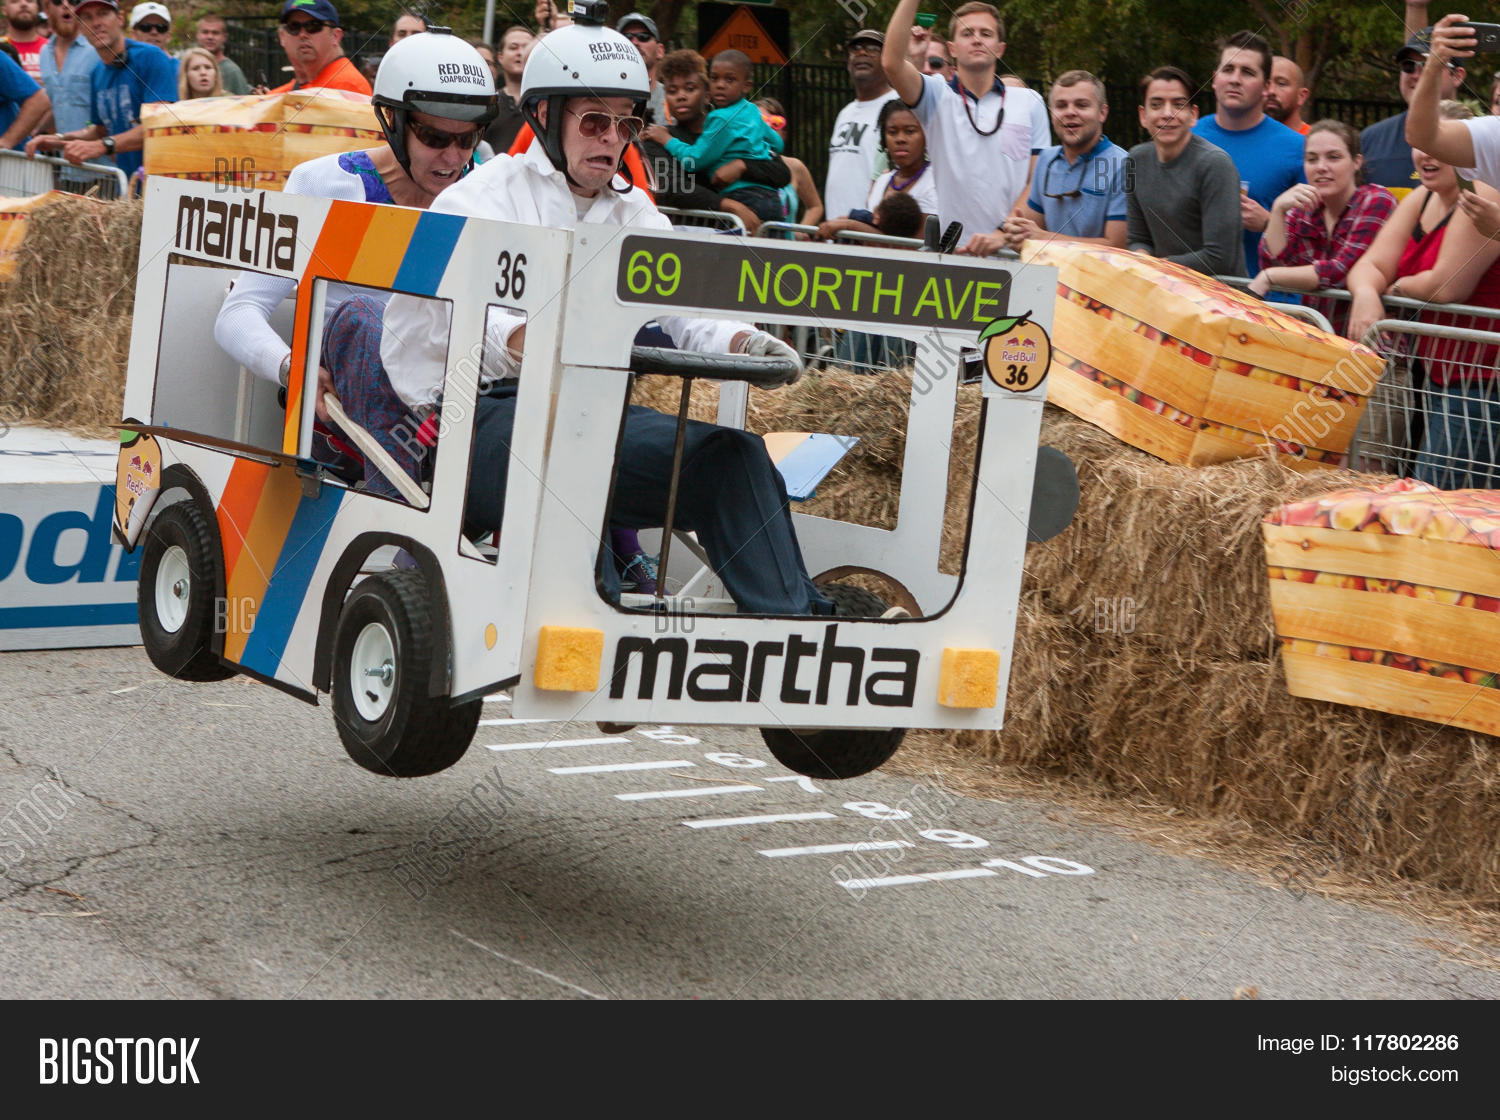 Red Bull Soap Box Derby >> Competitors Racing Bus Image Photo Free Trial Bigstock